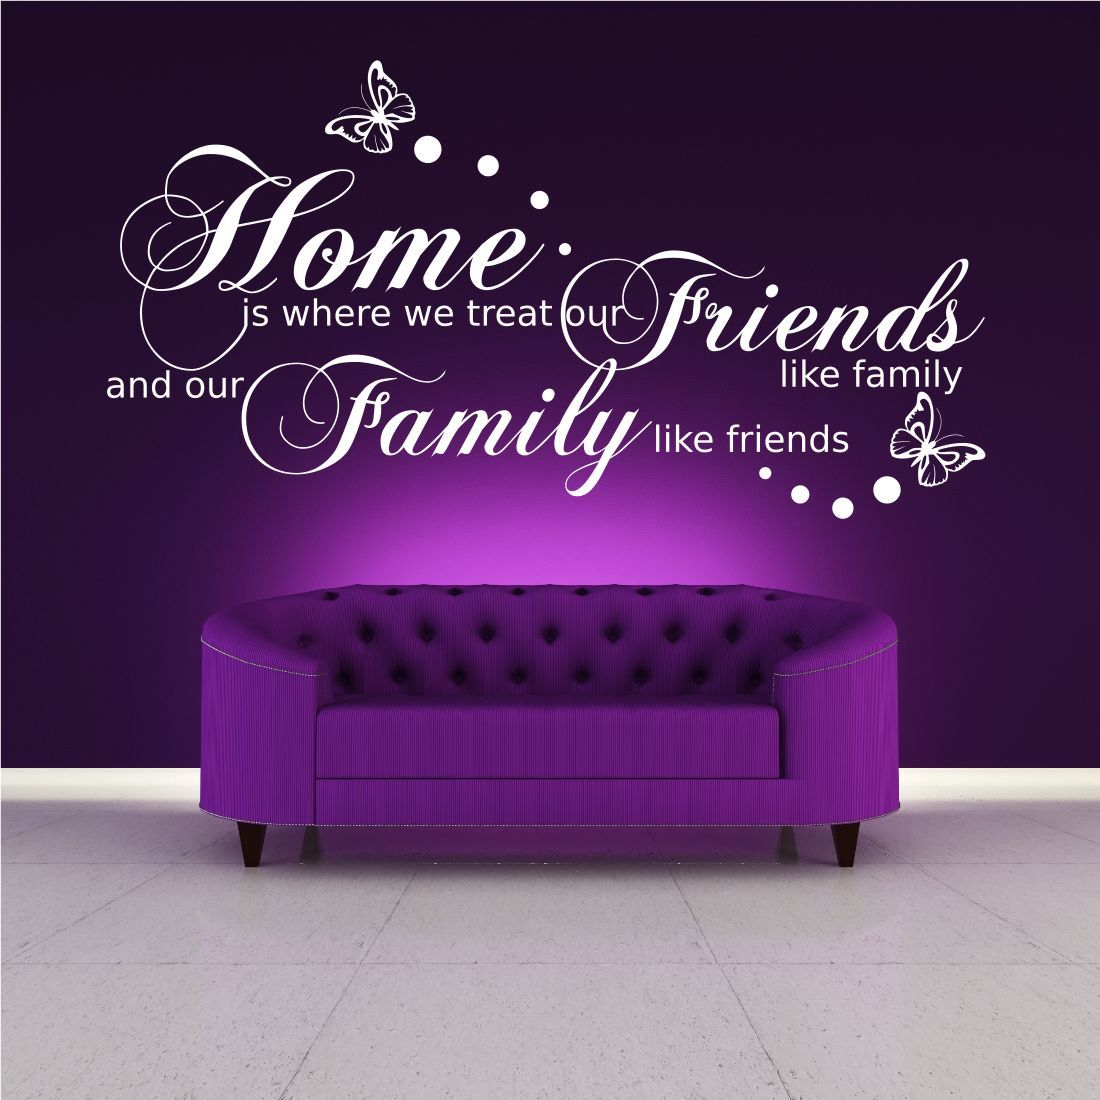 Family Friends Home Quote Wall Art Sticker Transfer Decal Mural